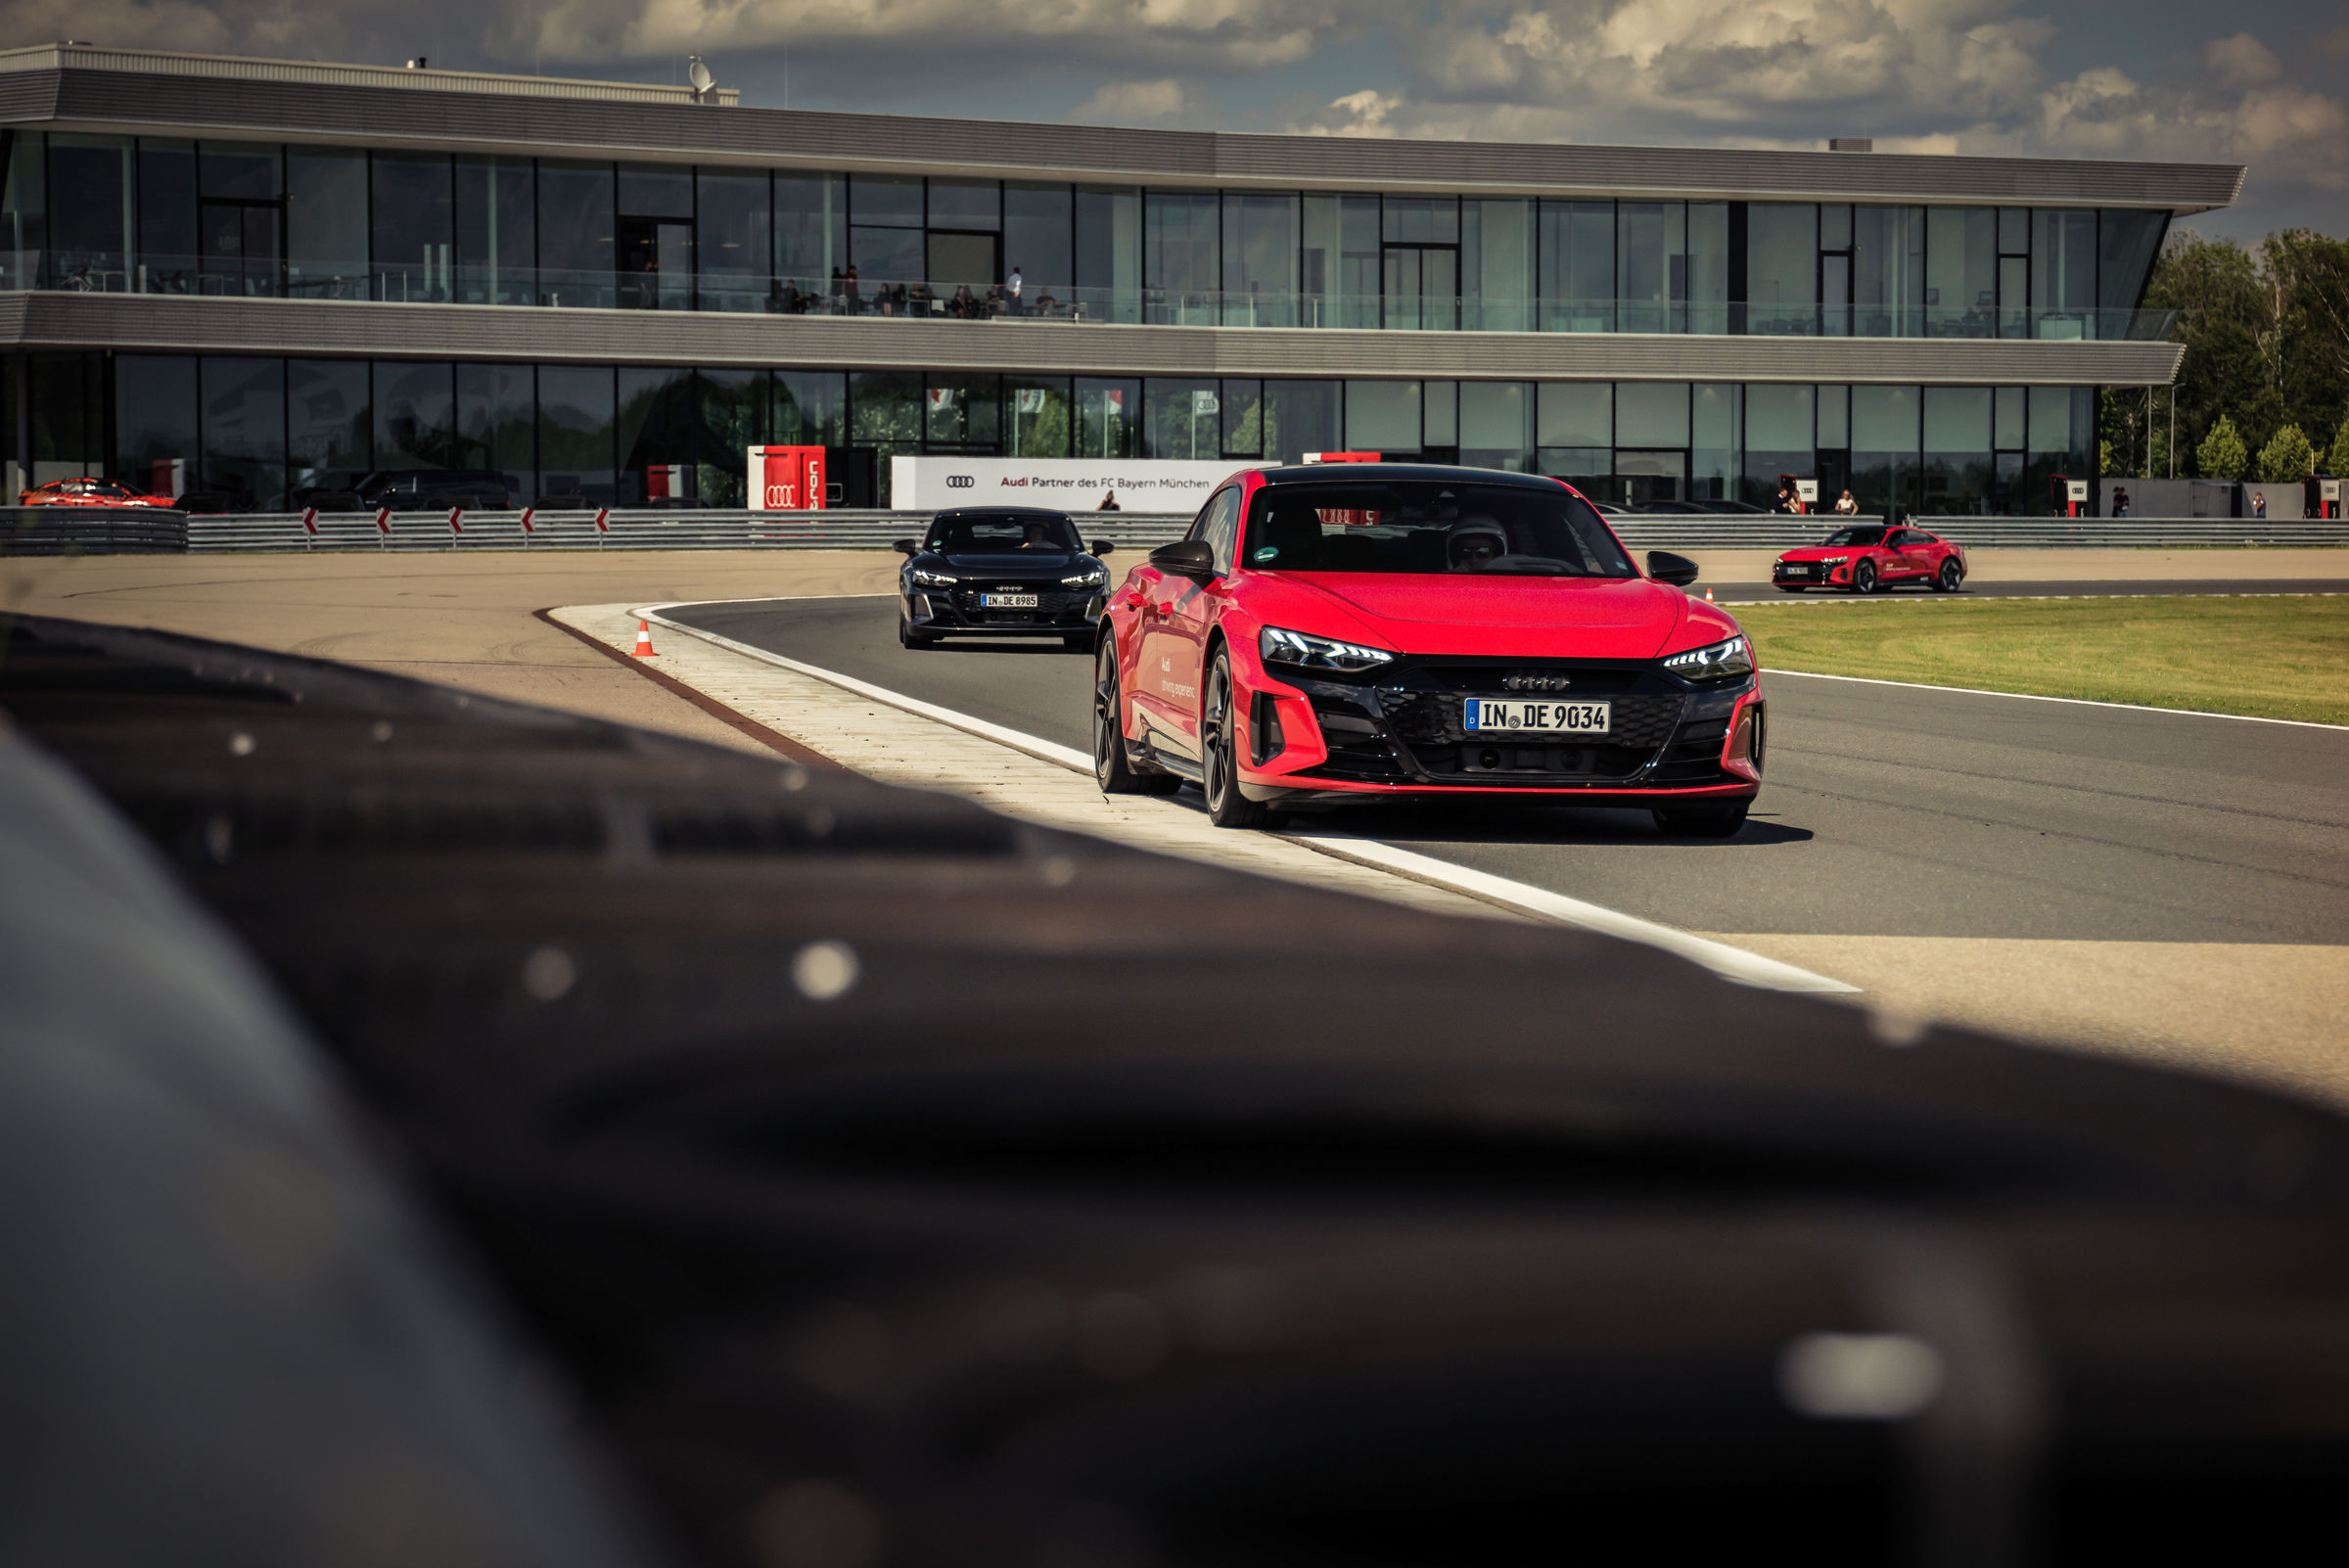 Electrification 2.0: pros from FC Bayern receive Audi e-tron GT - Image 6